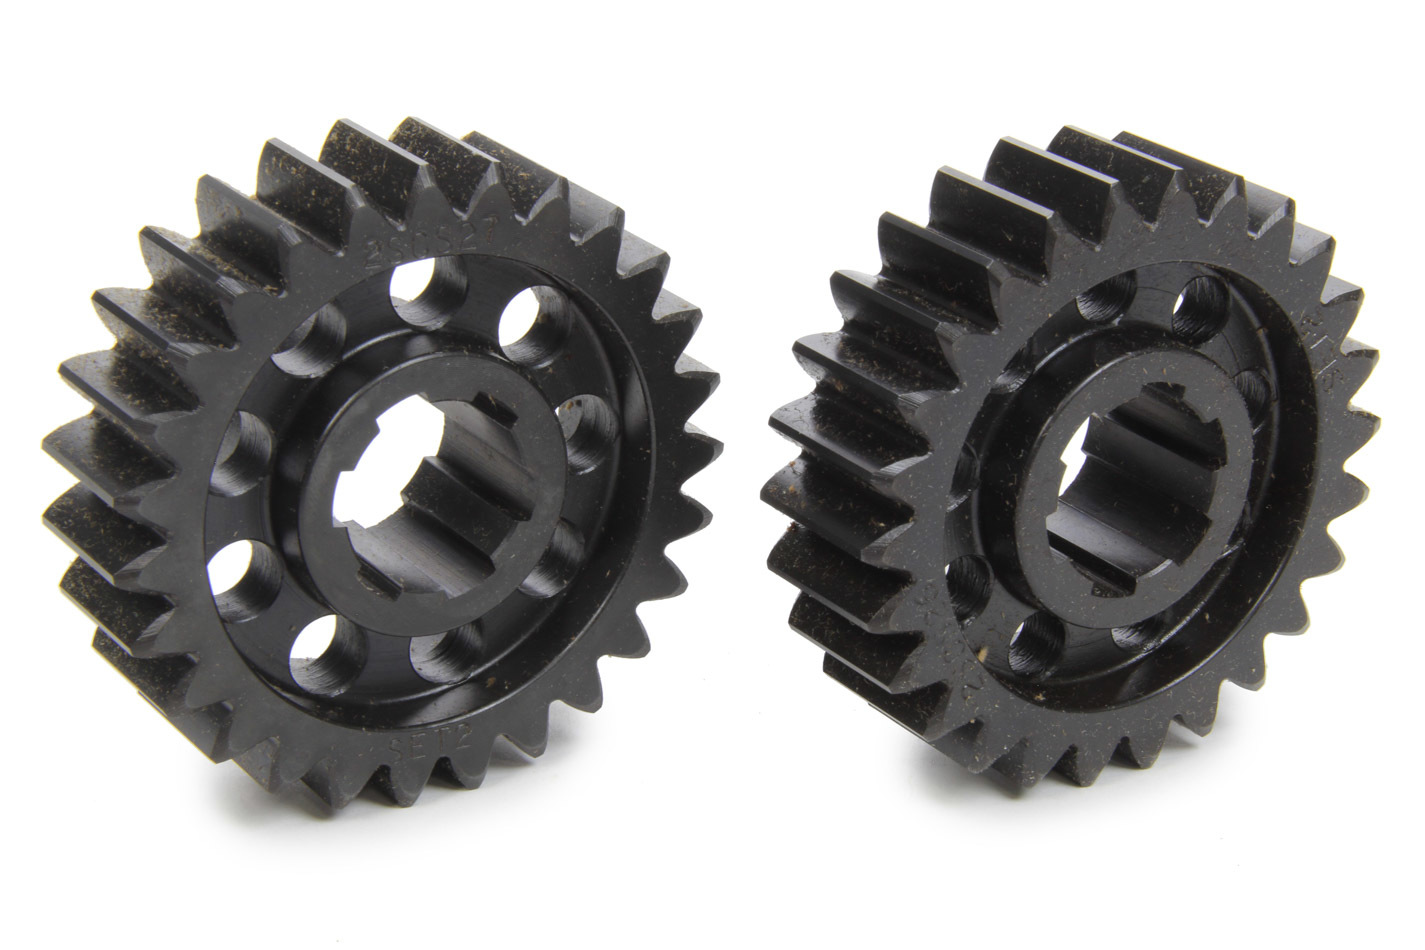 SCS Gears 62 Quick Change Gear Set, Professional, Set 62, 6 Spline, 4.11 Ratio 3.96 / 4.27, 4.33 Ratio 4.17 / 4.50, Steel, Each